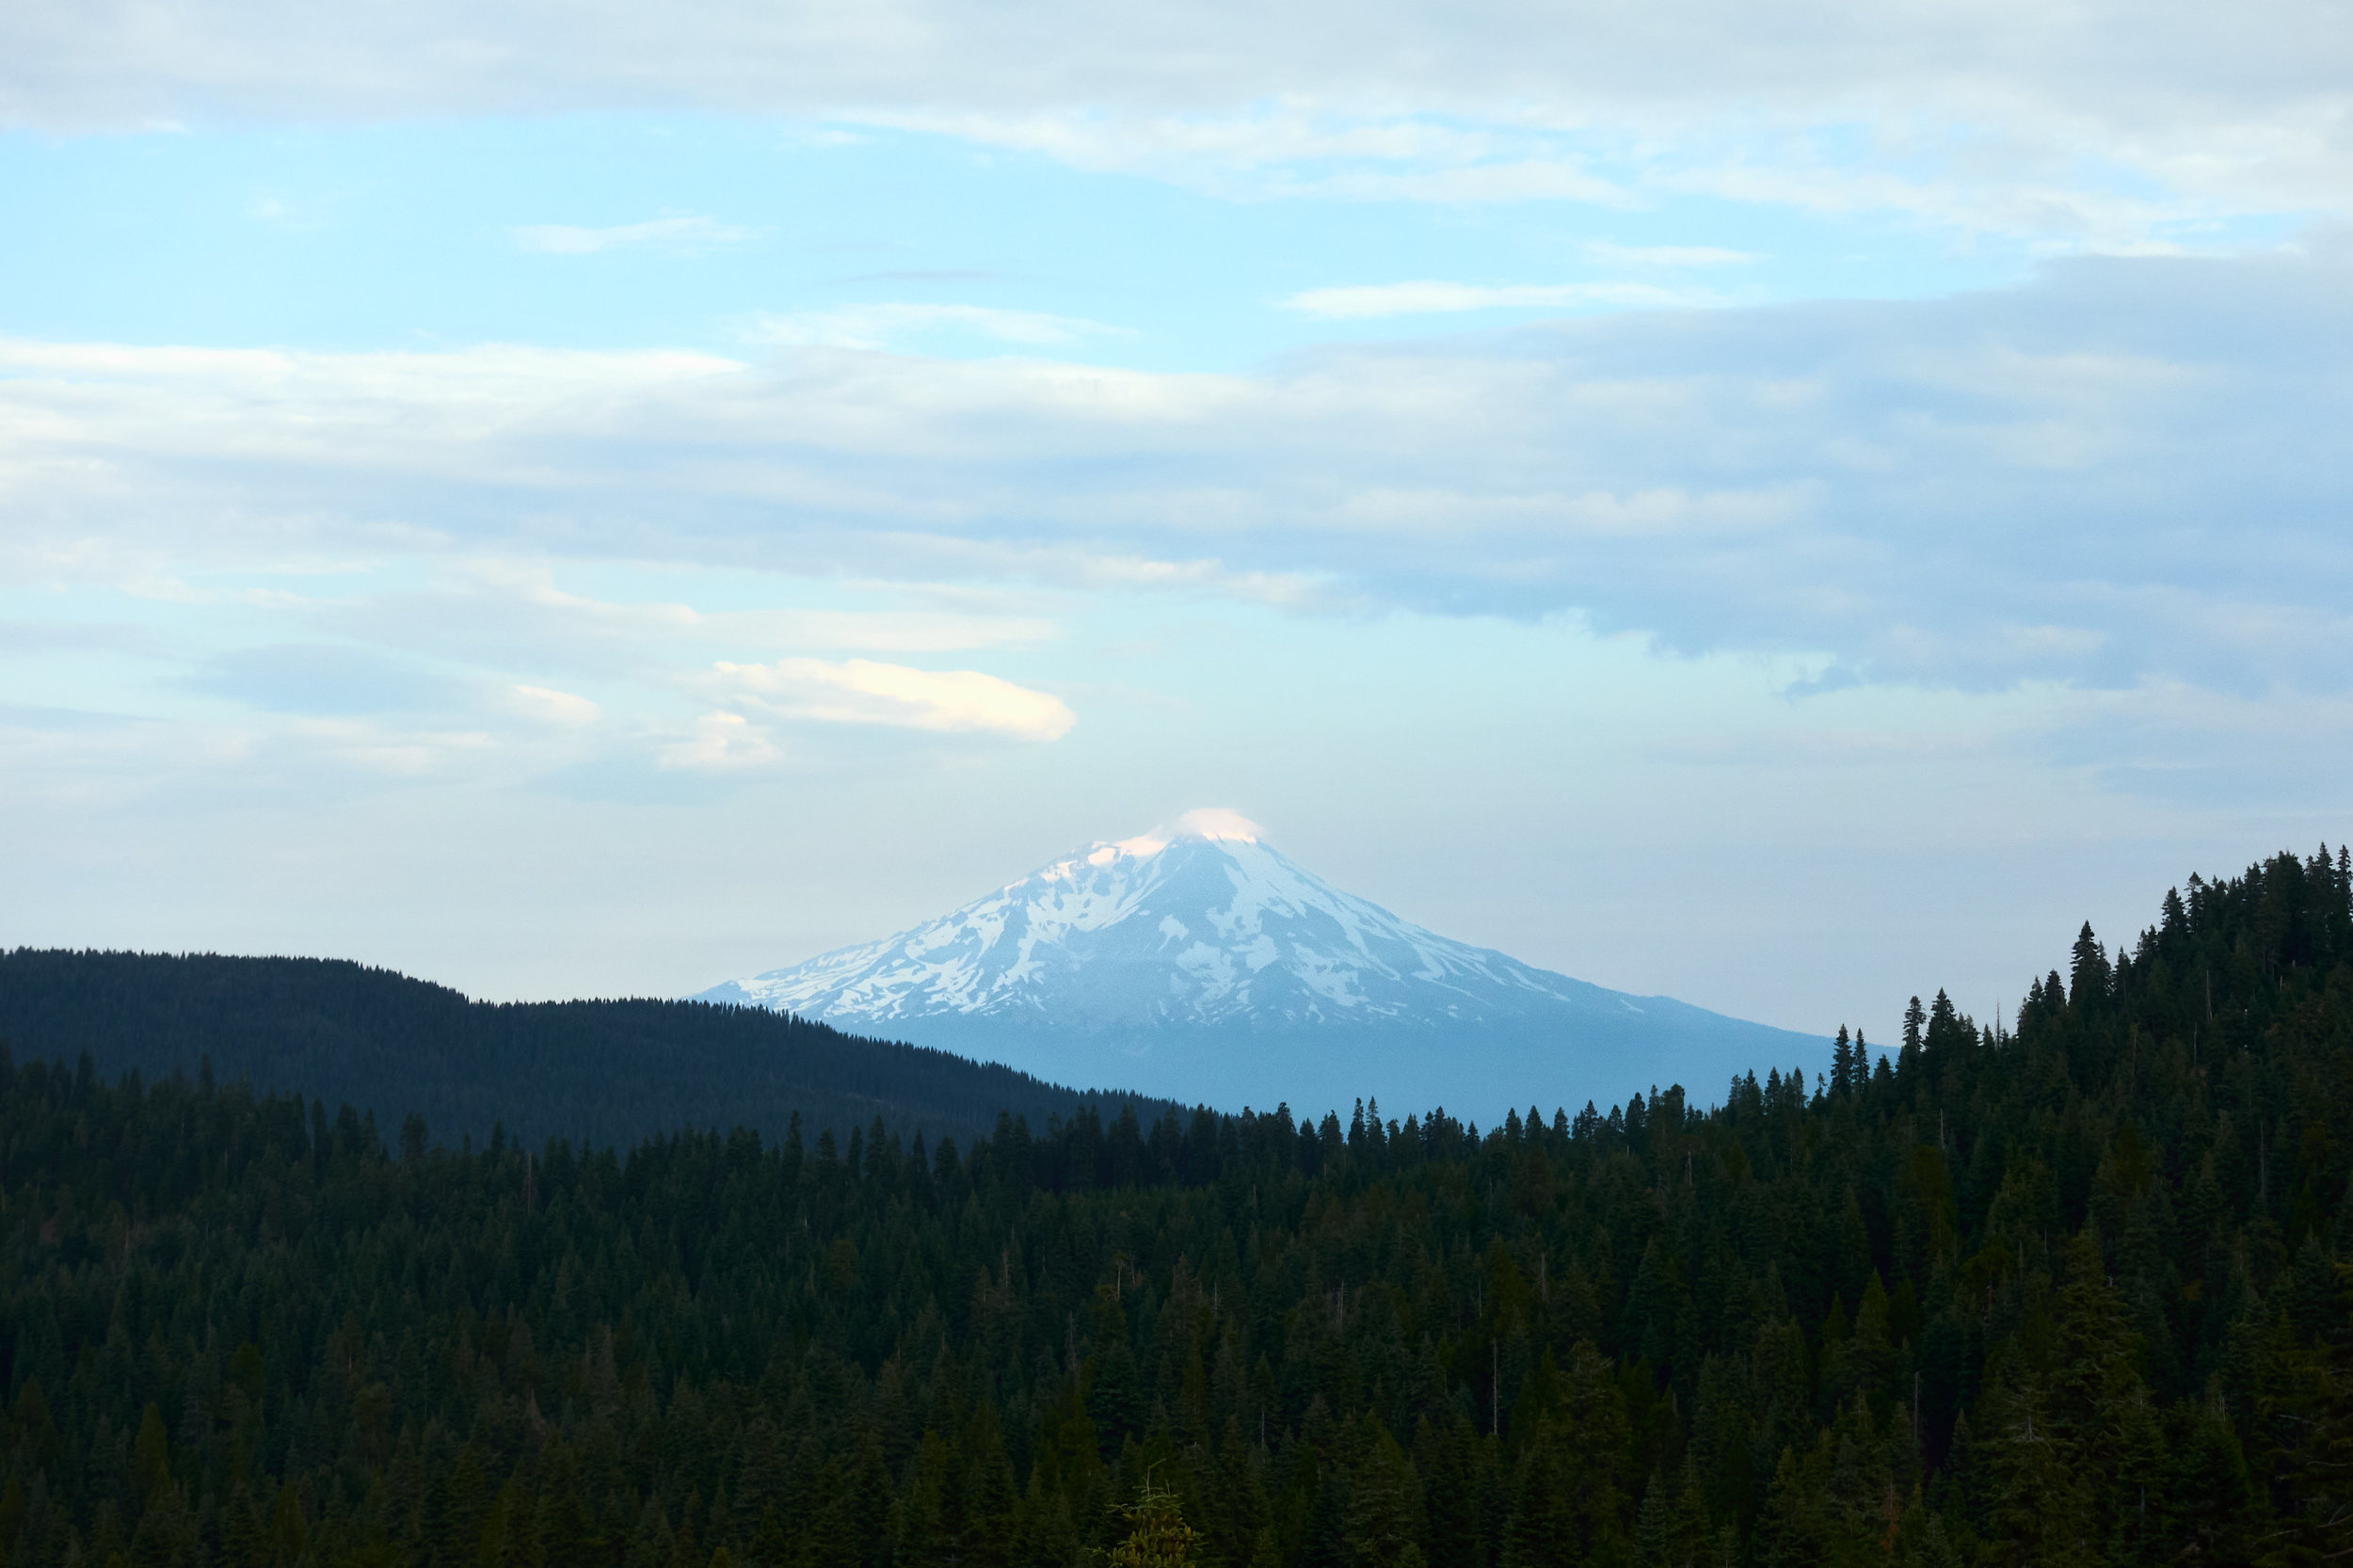 We keep seeing Mt. Shasta every now and then.